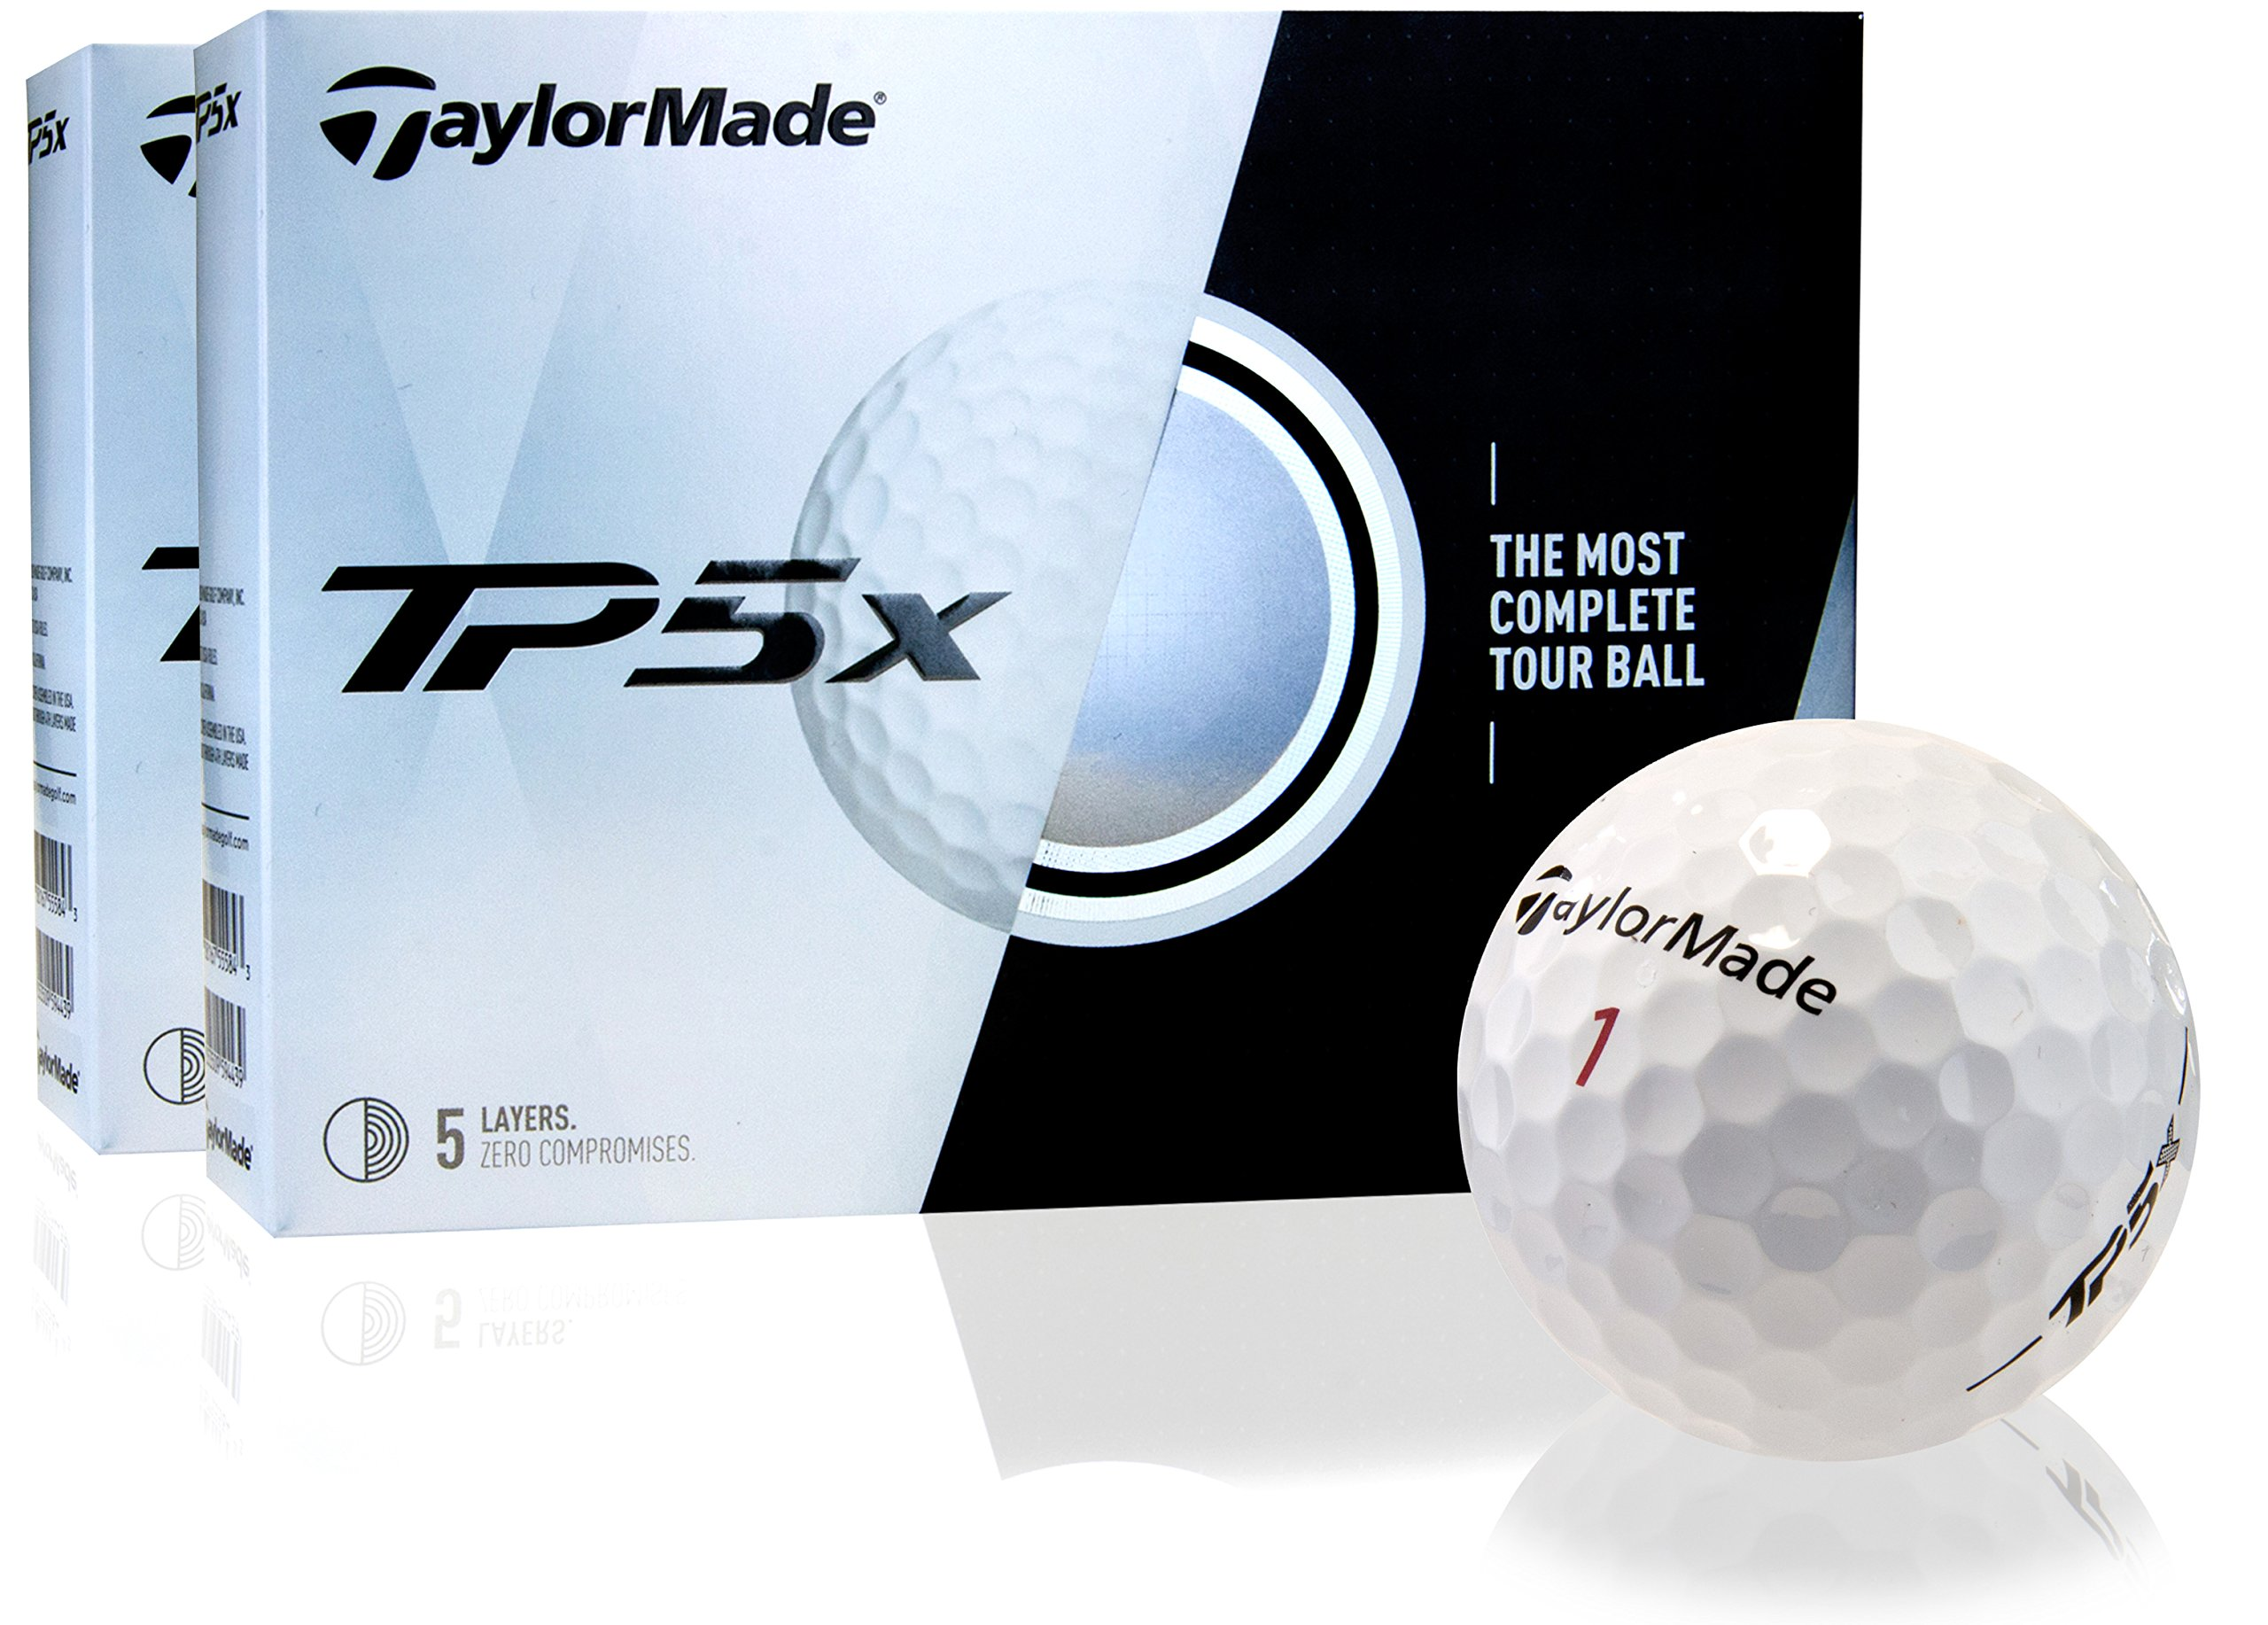 Taylor Made TP5X Golf Balls- Double Dozen